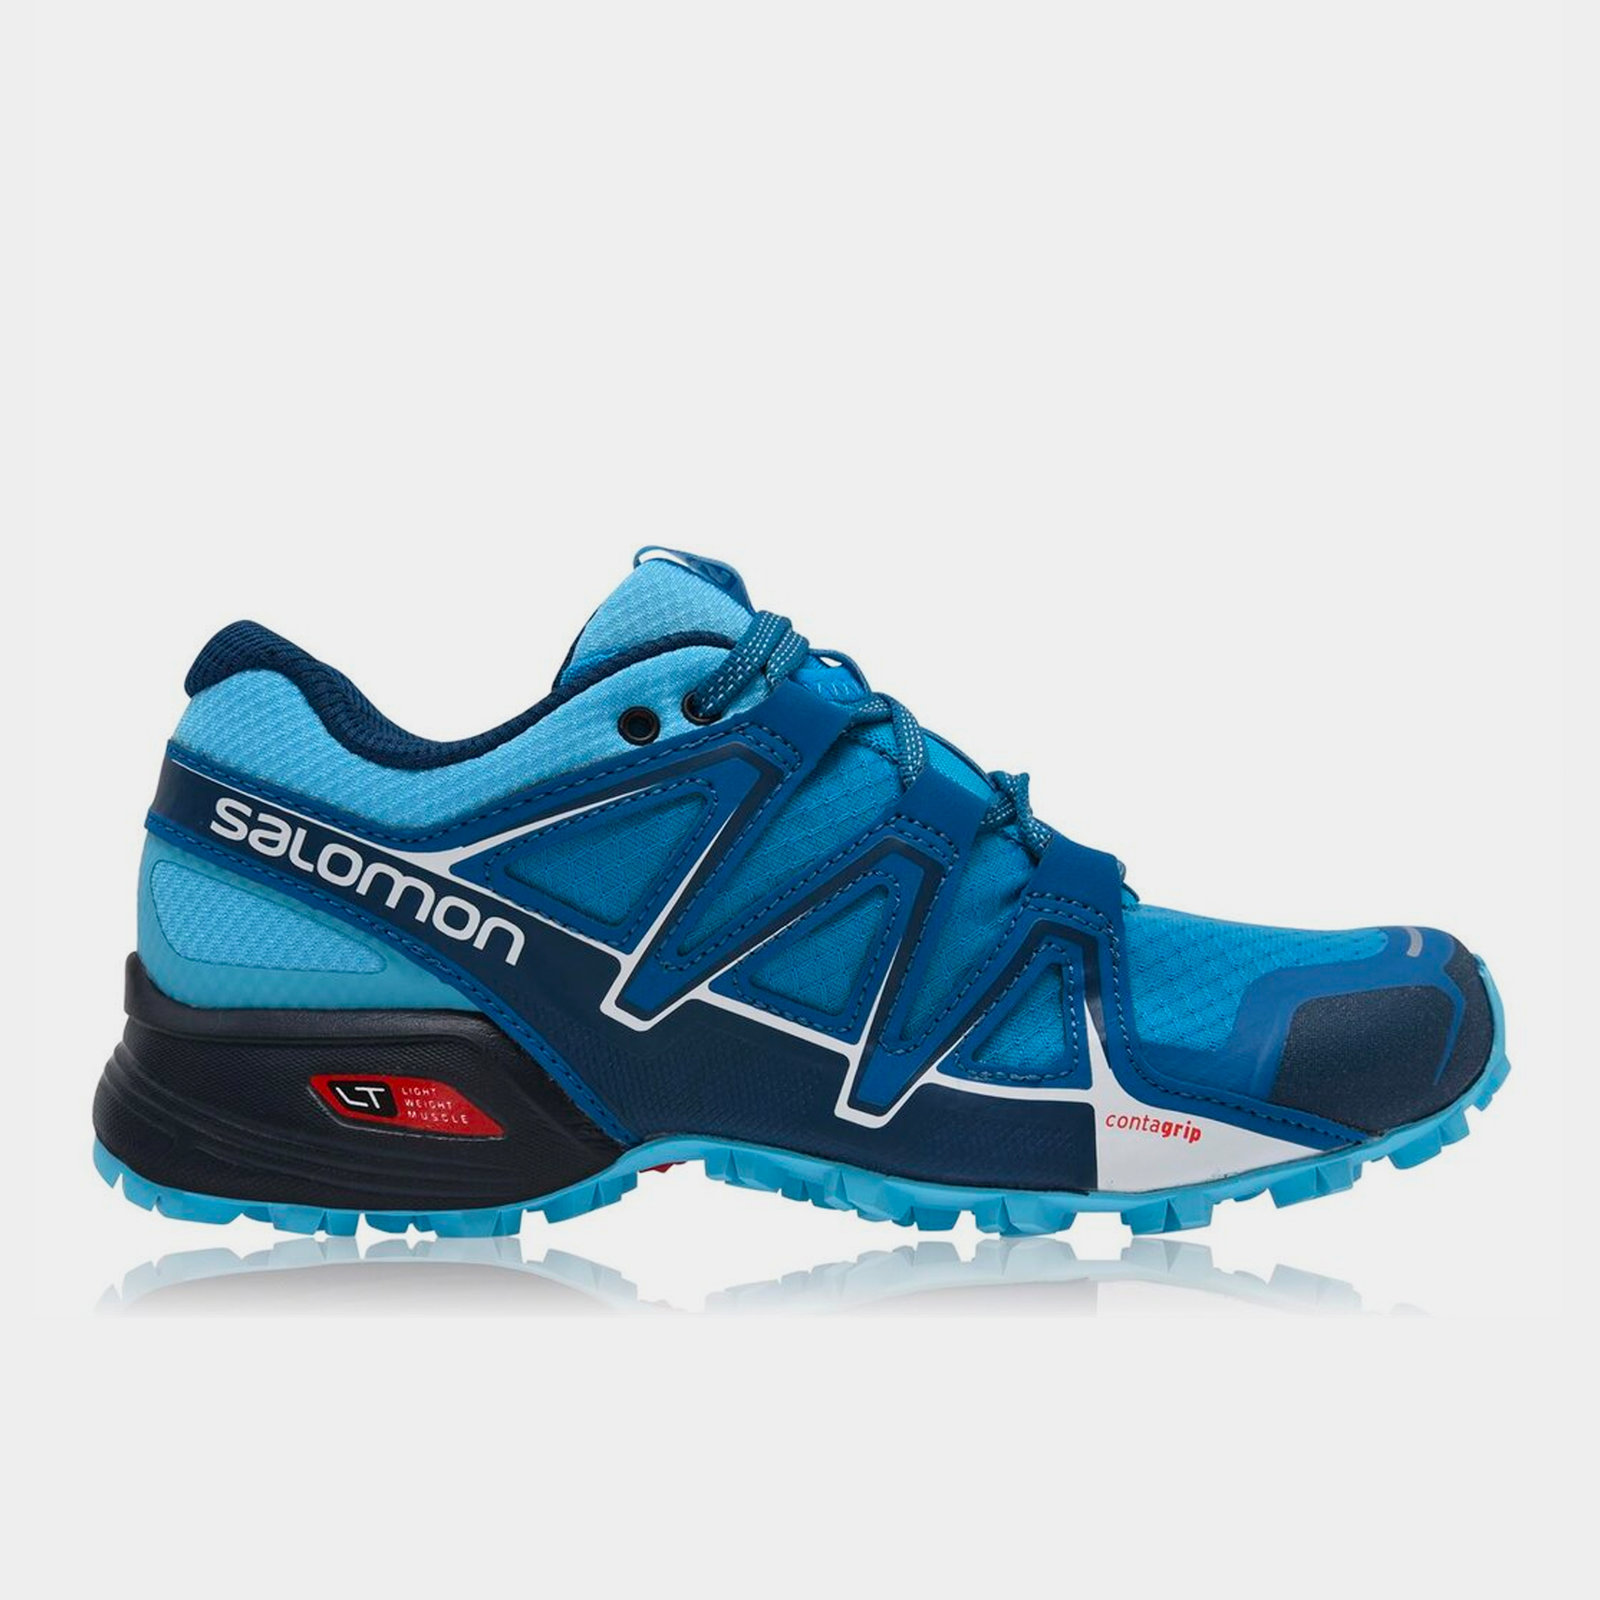 Details about Salomon Womens Speedcross Vario 2 Trail Running Shoes Footwear Sports Trainers